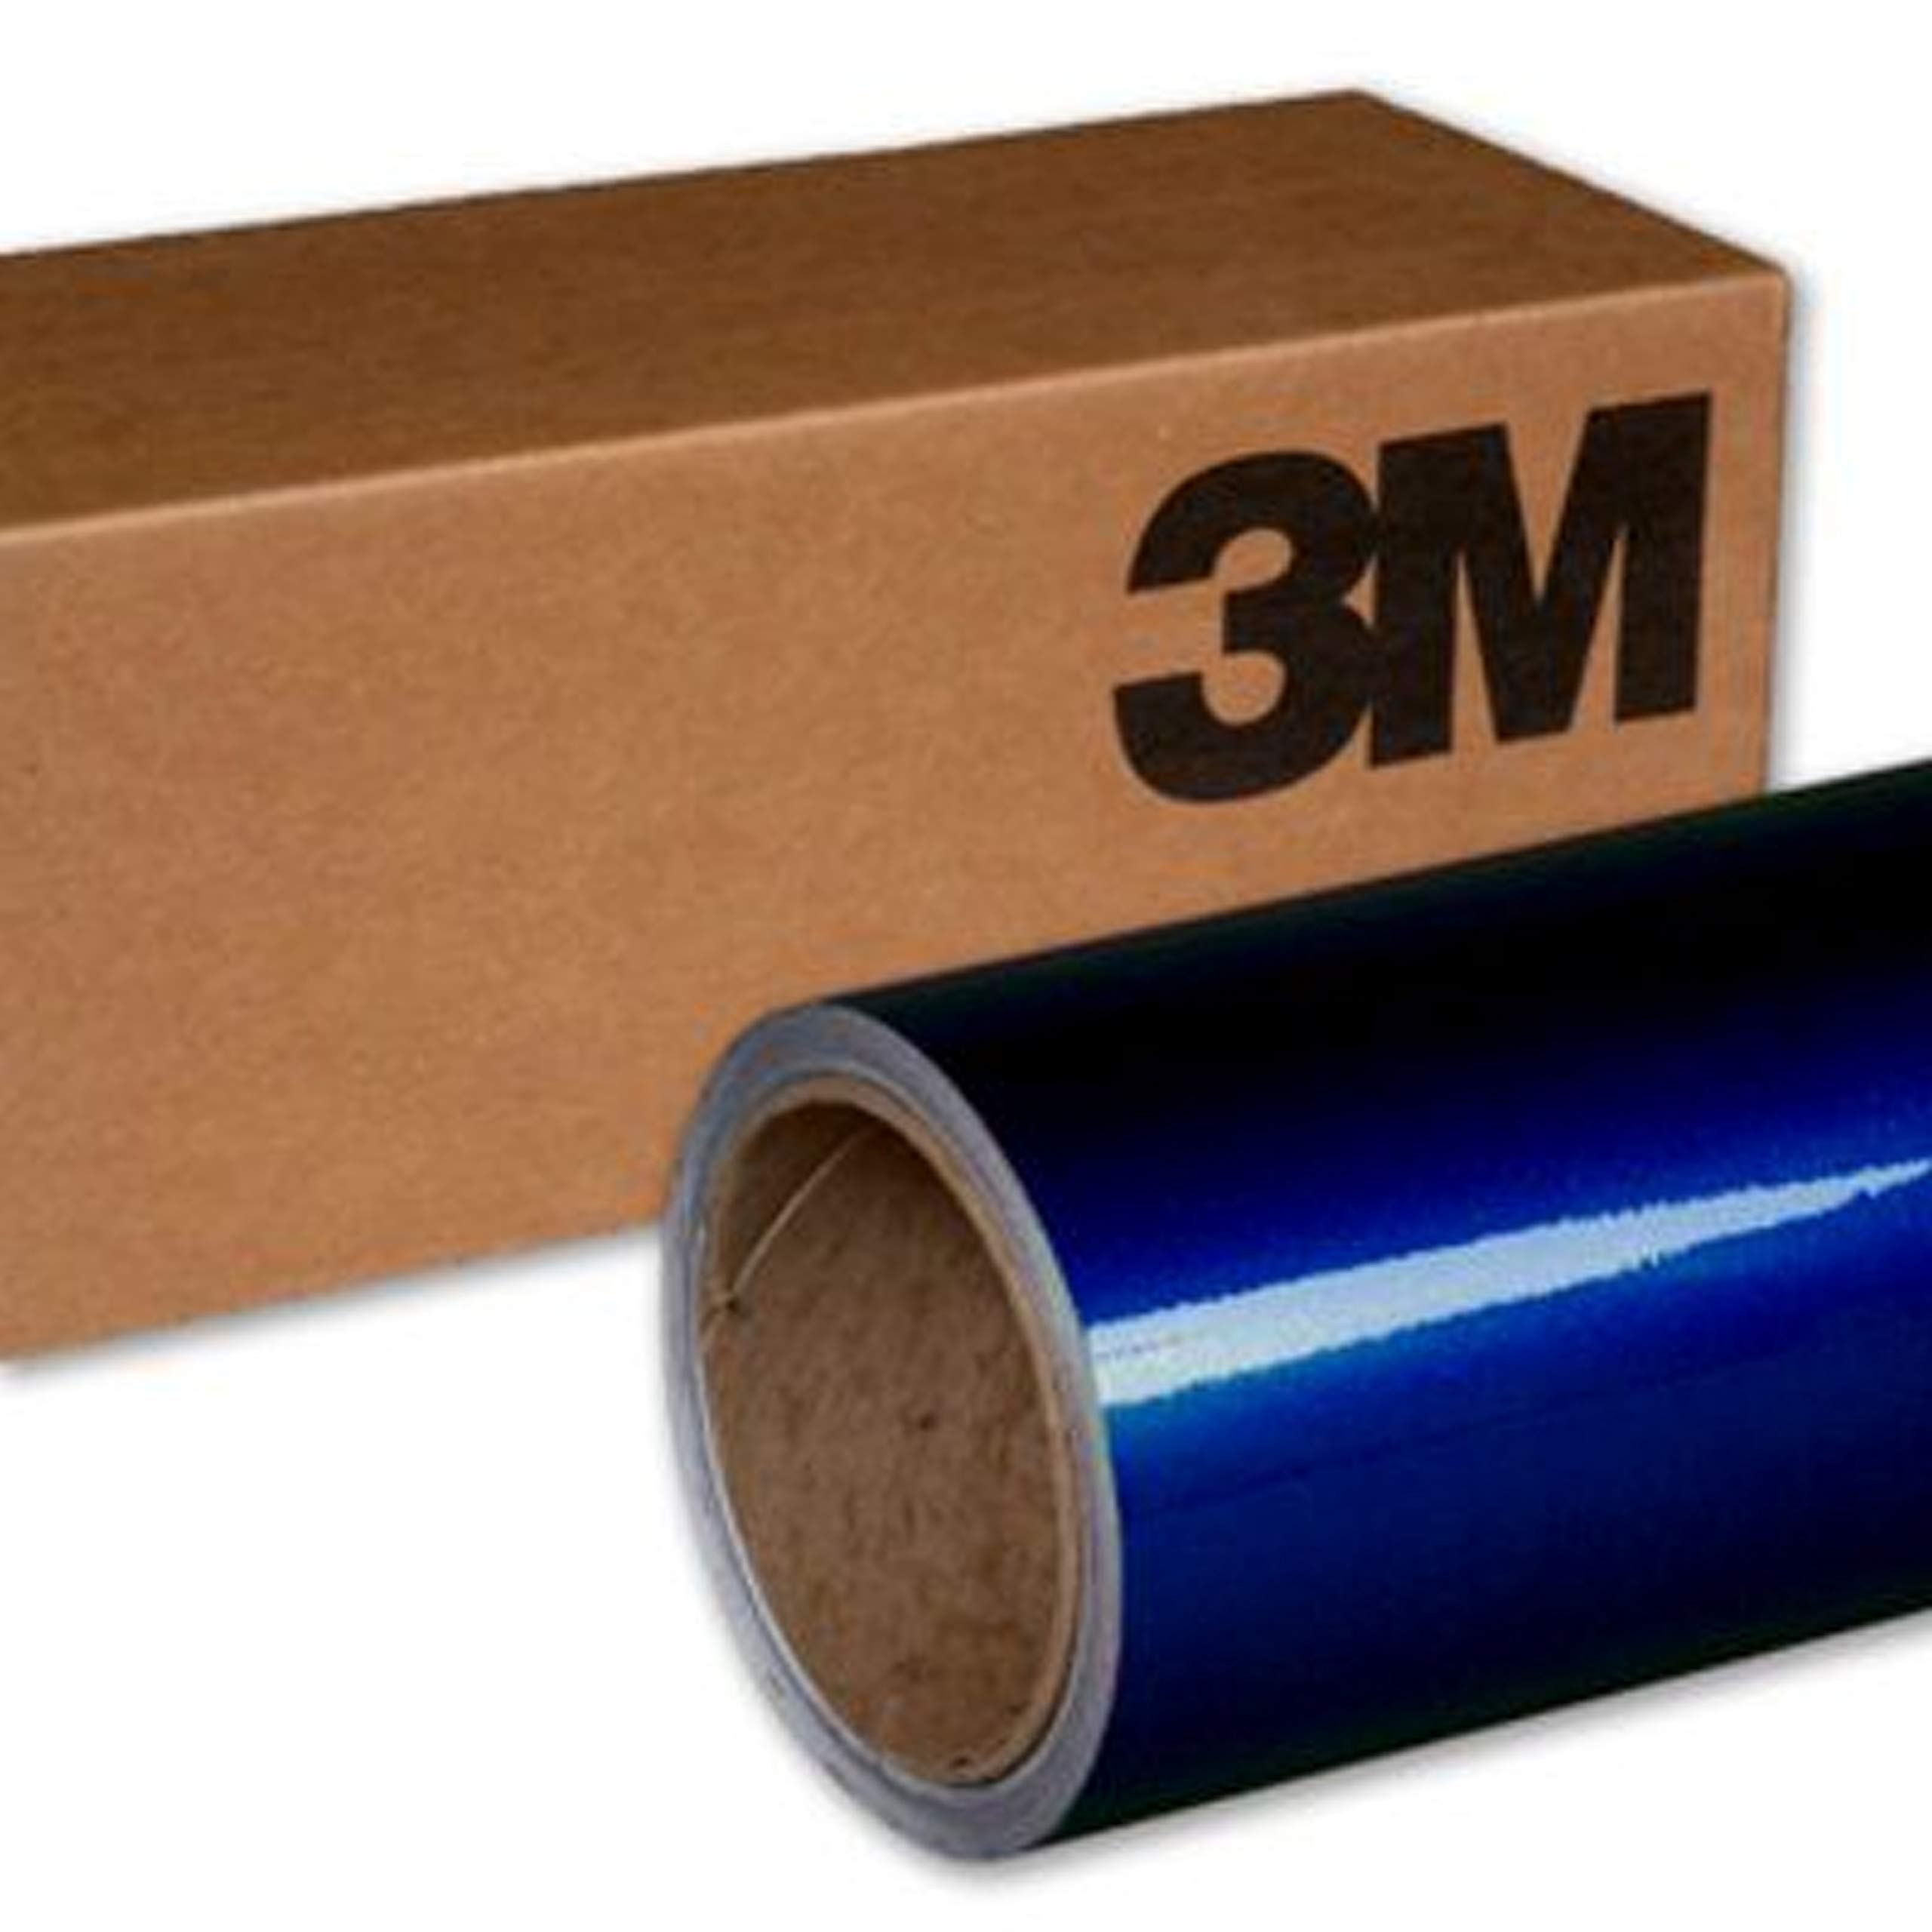 3M 1080 G217 GLOSS DEEP BLUE METALLIC 3in x 5in (SAMPLE SIZE) Car Wrap Vinyl Film